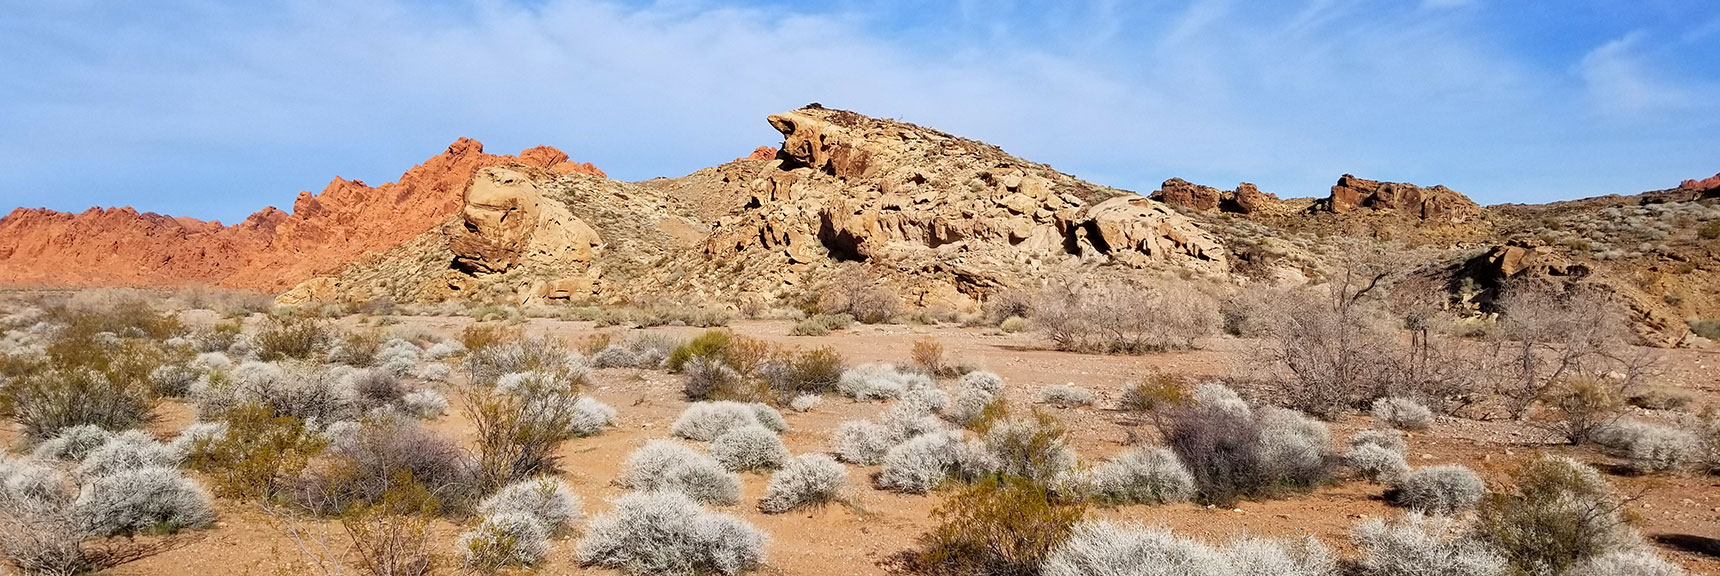 Rock Formations in the Eastern Area Wash on Old Arrowhead Trail in Valley of Fire State Park, Nevada